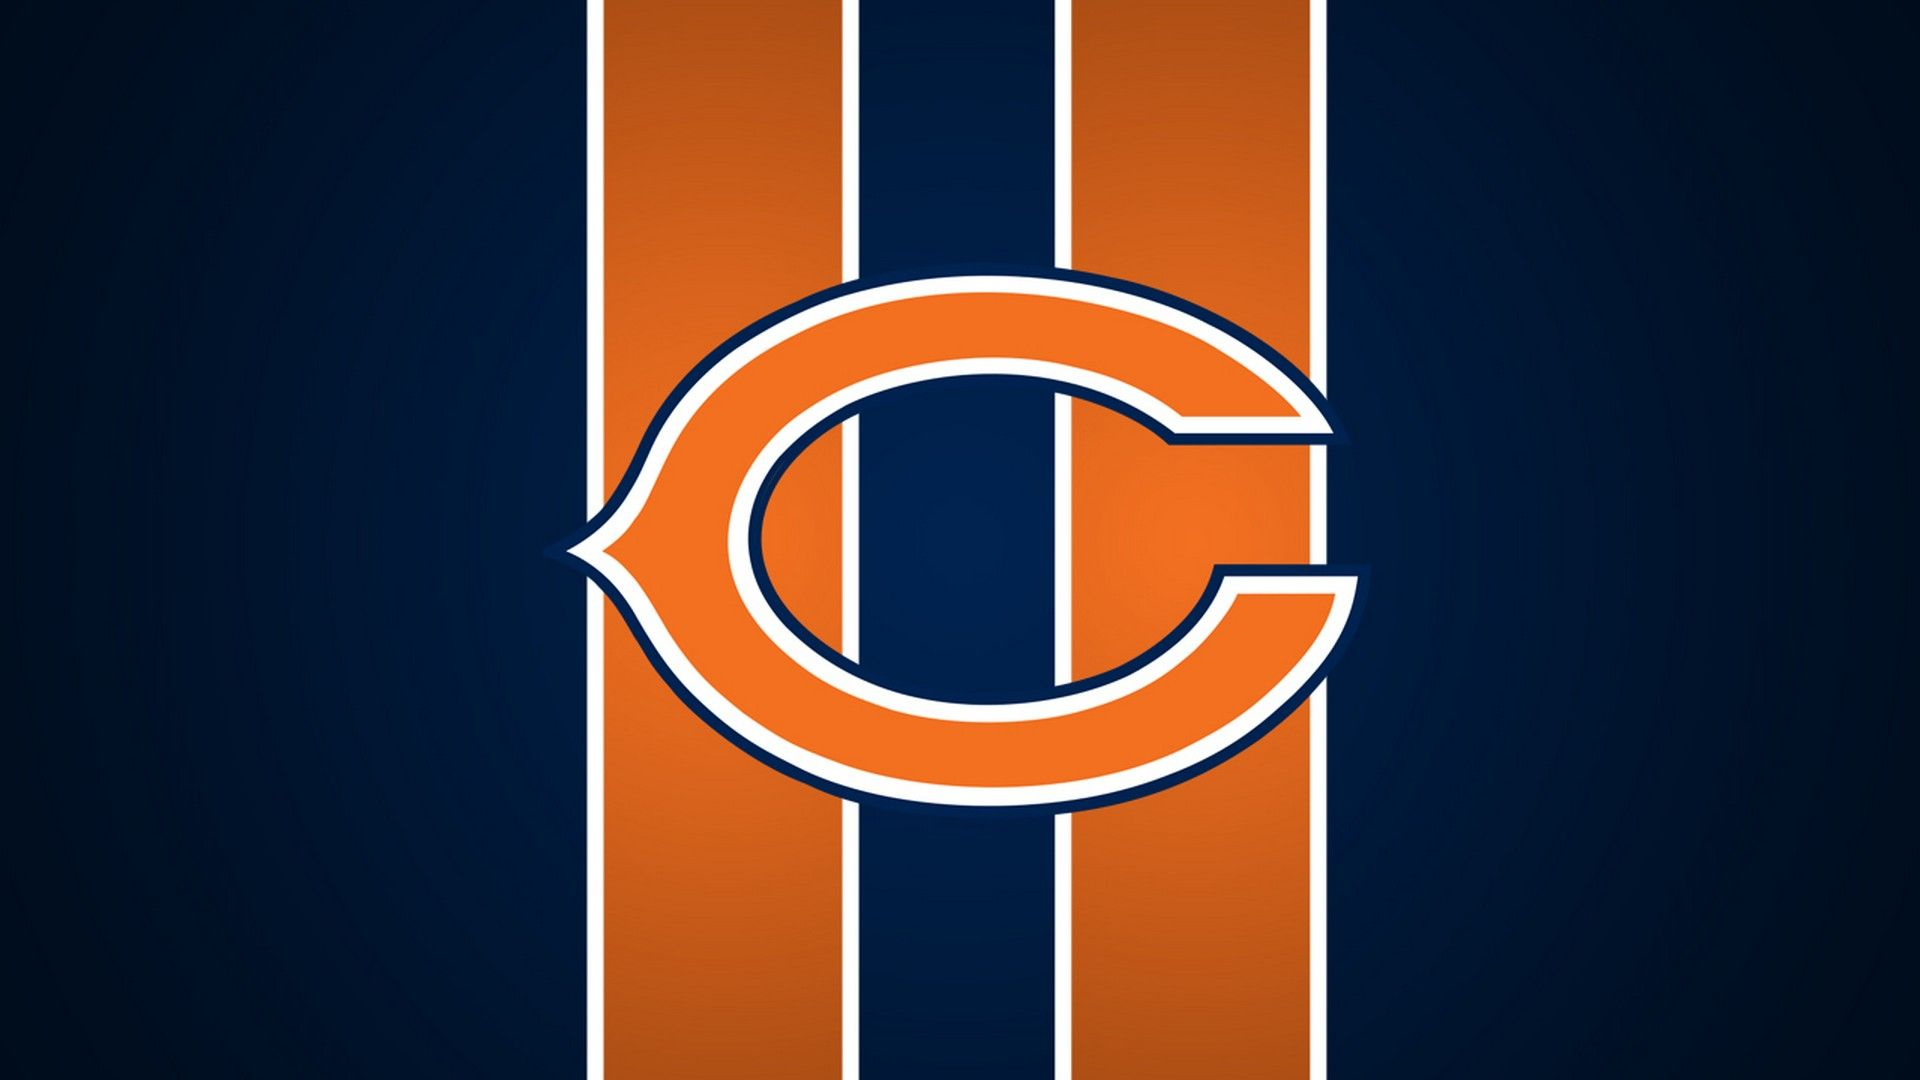 1920x1080 - Chicago Bears Wallpapers 4